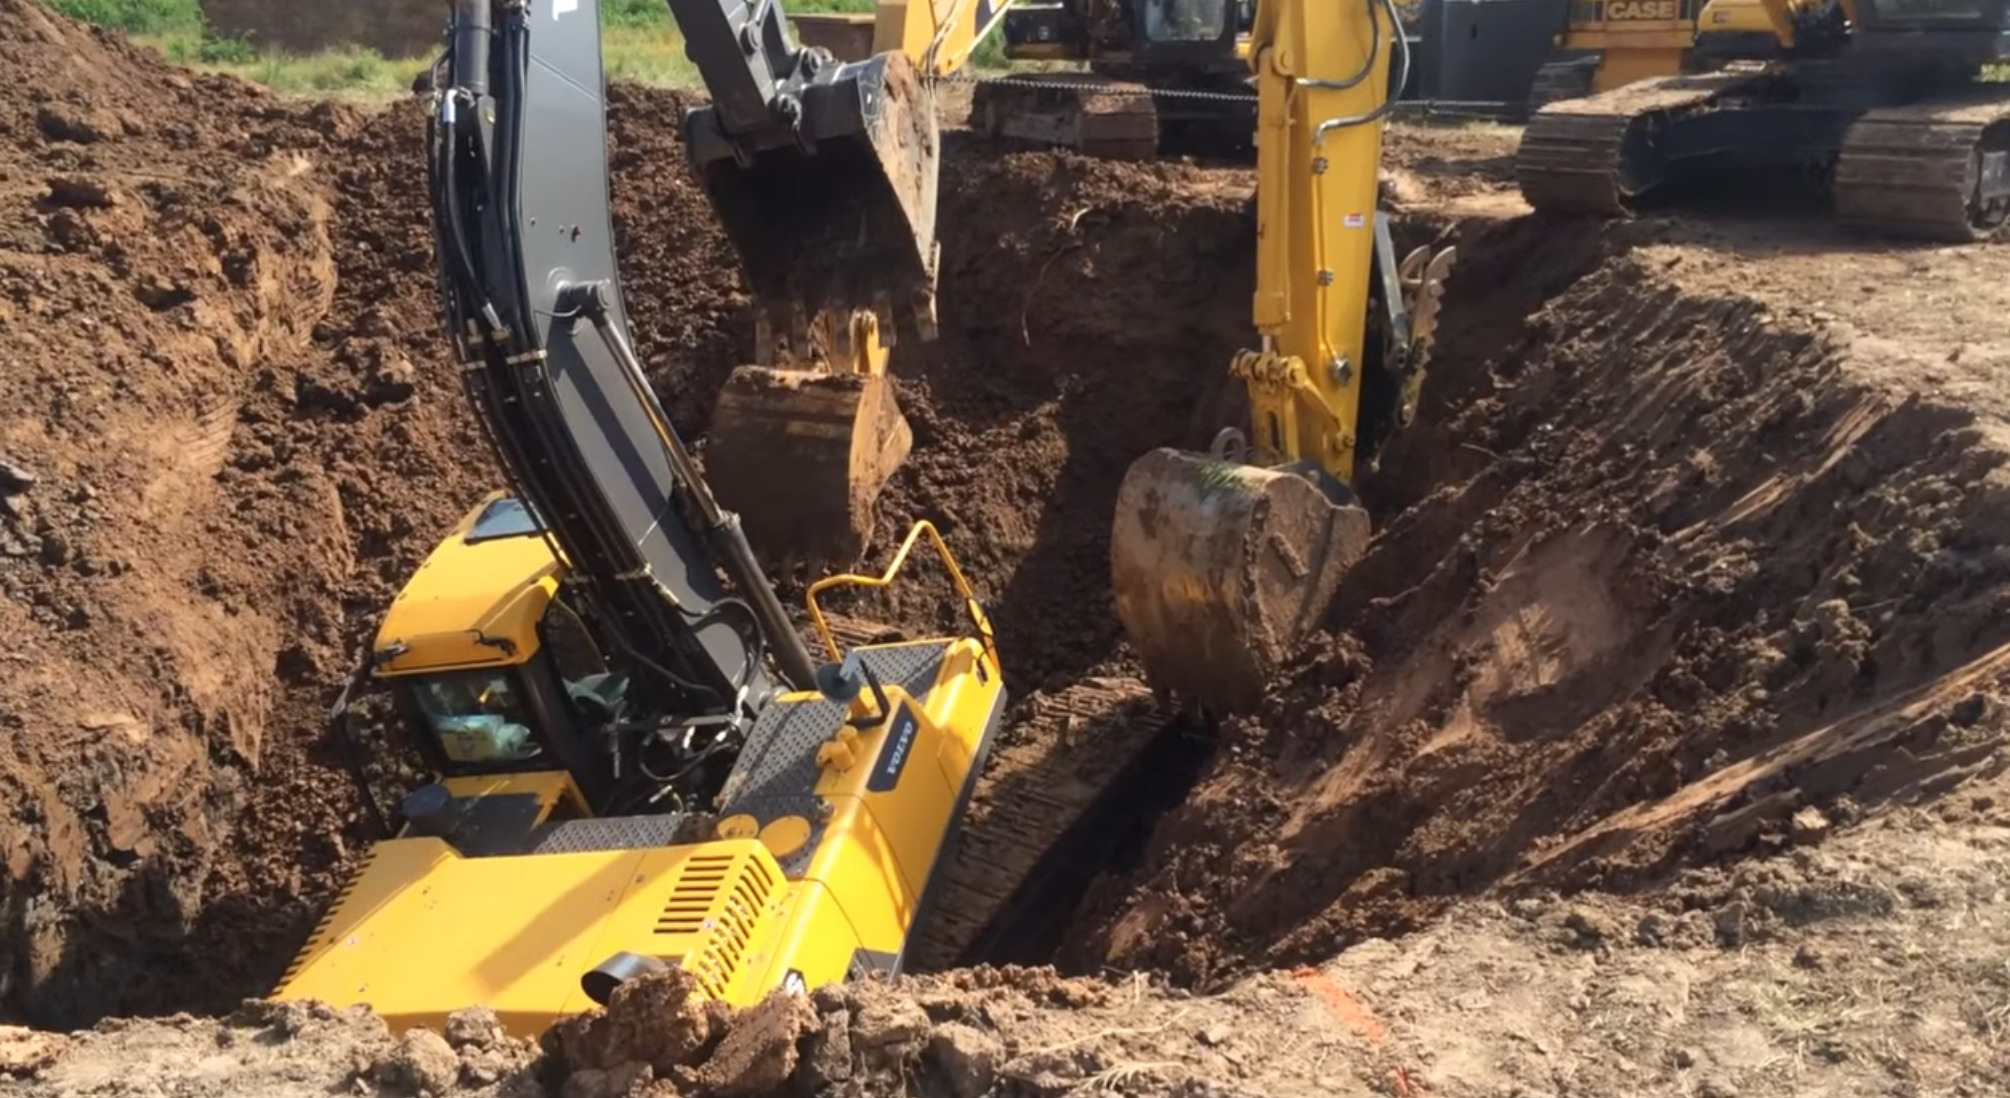 Watch Excavator Dig Its Way Out Of Hole